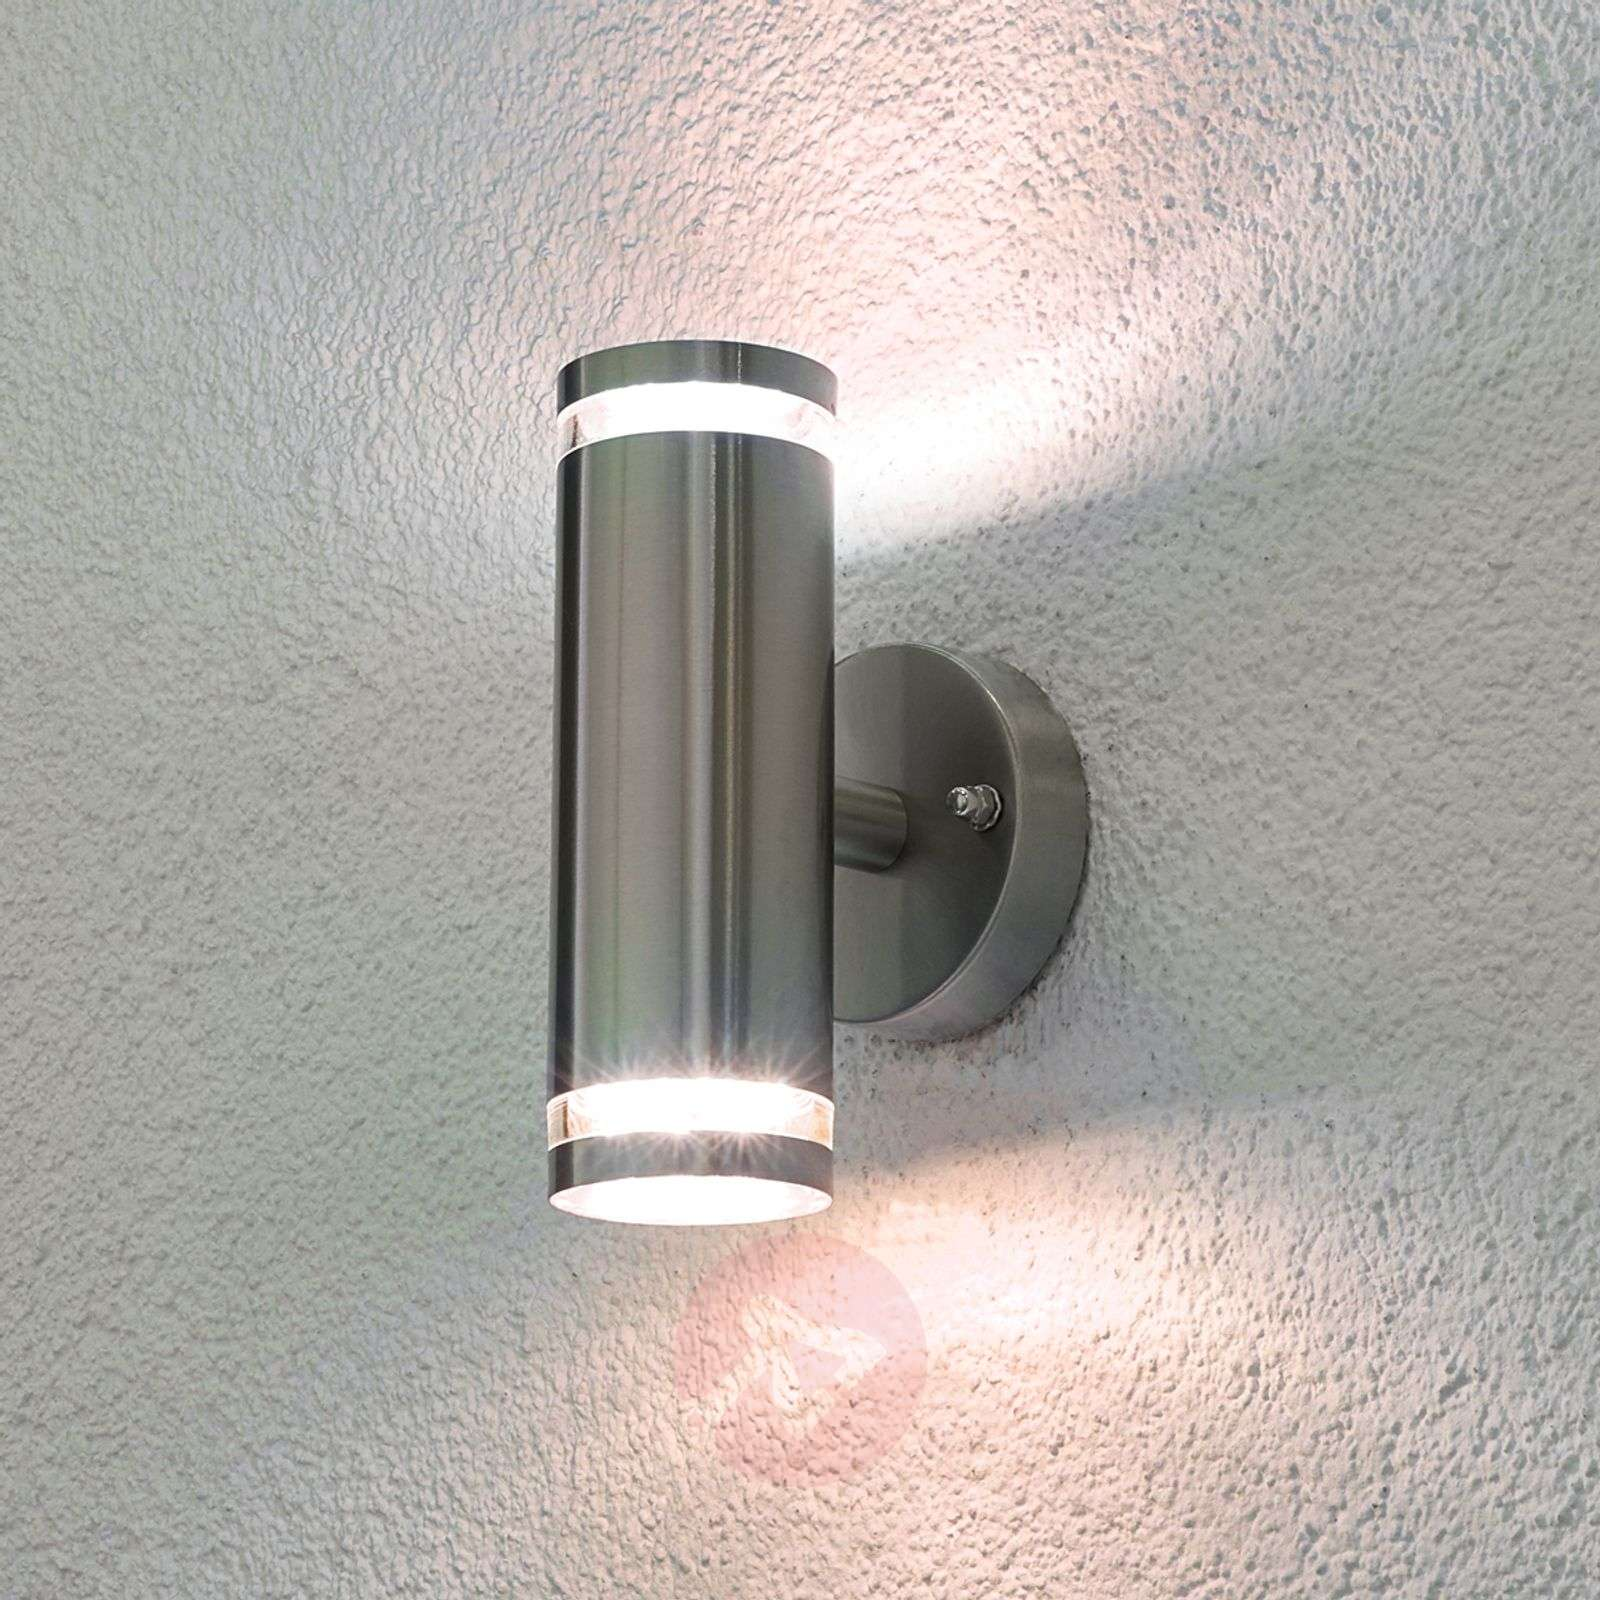 Tiberus stainless steel led outdoor wall light 9960049 01